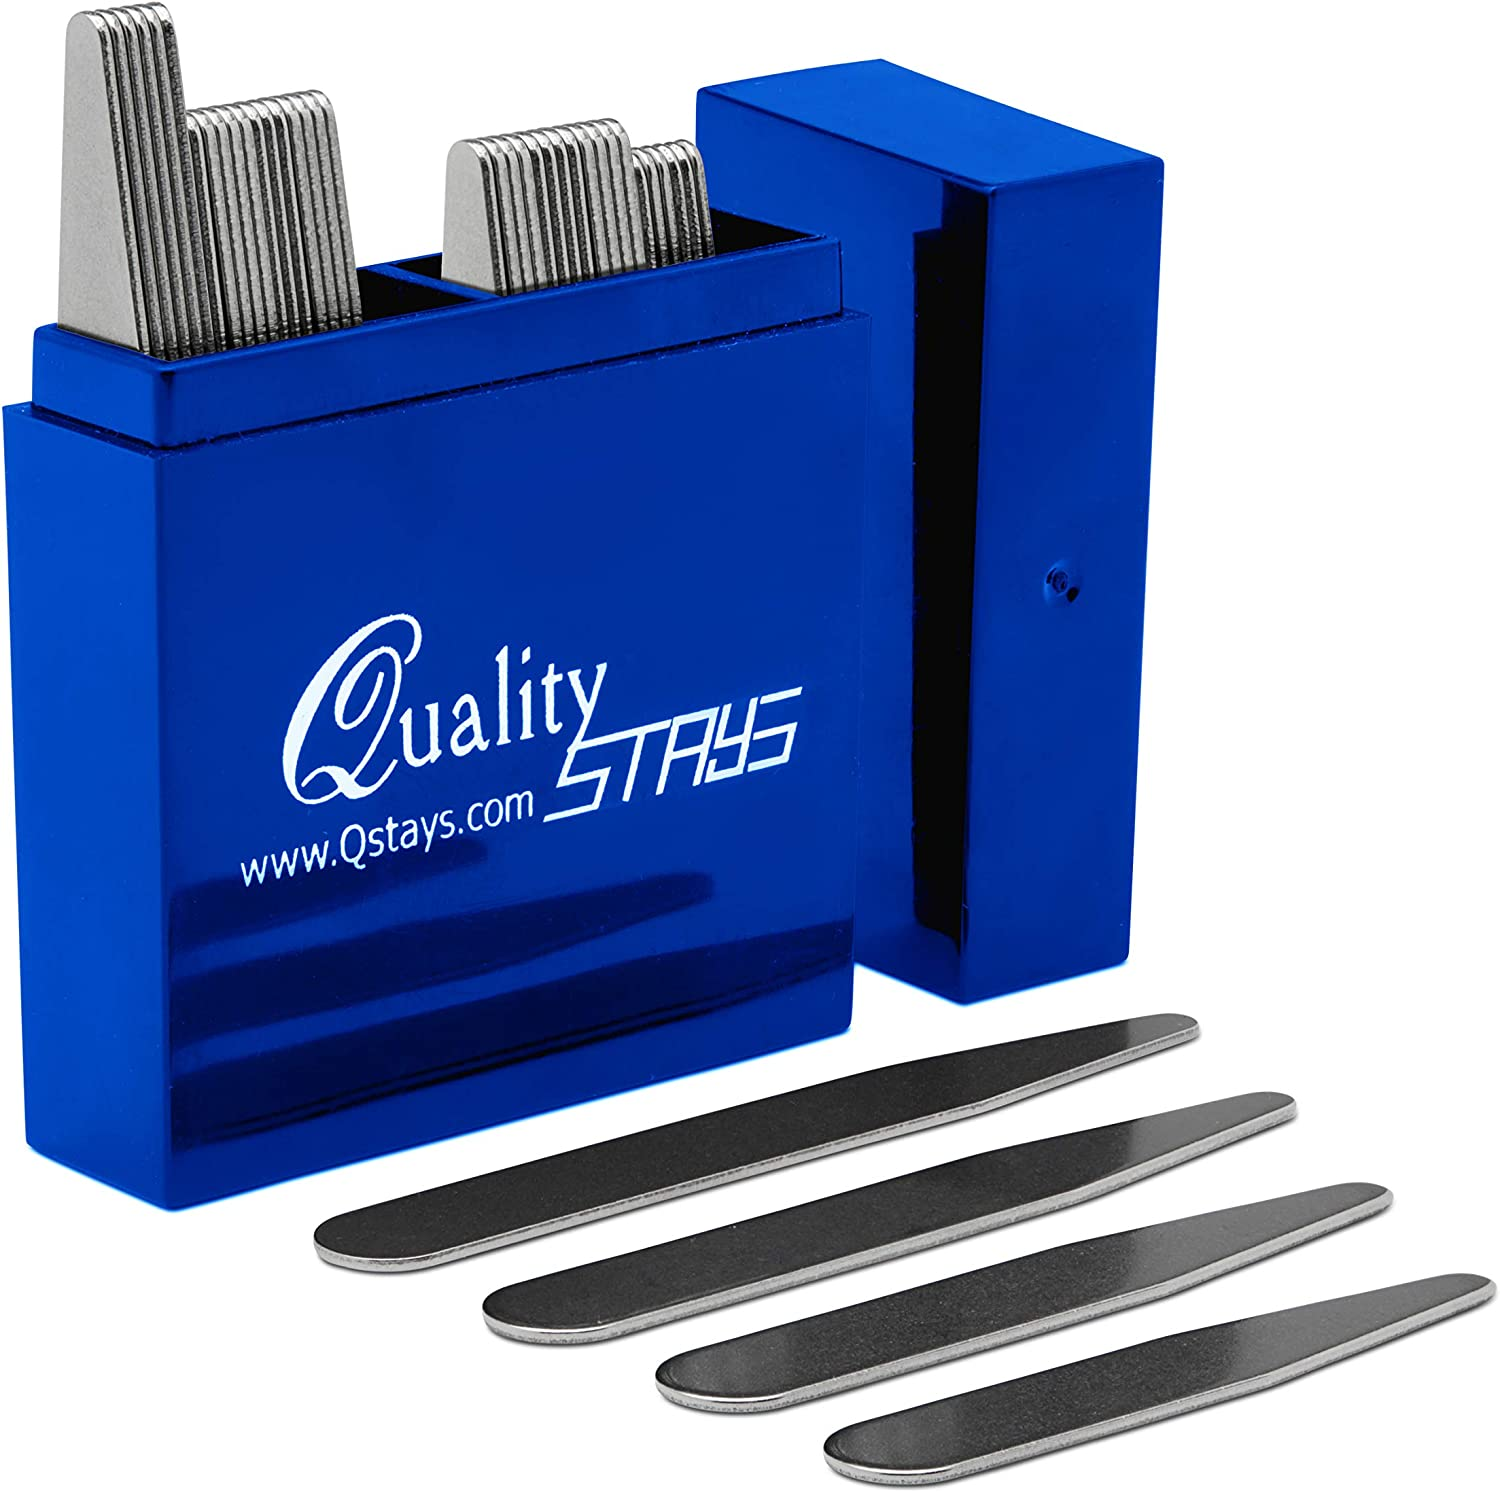 36 Stainless Steel Collar Stays for Men in Sapphire Box, Order the Sizes You Need (36 Collar Stays - 2.2